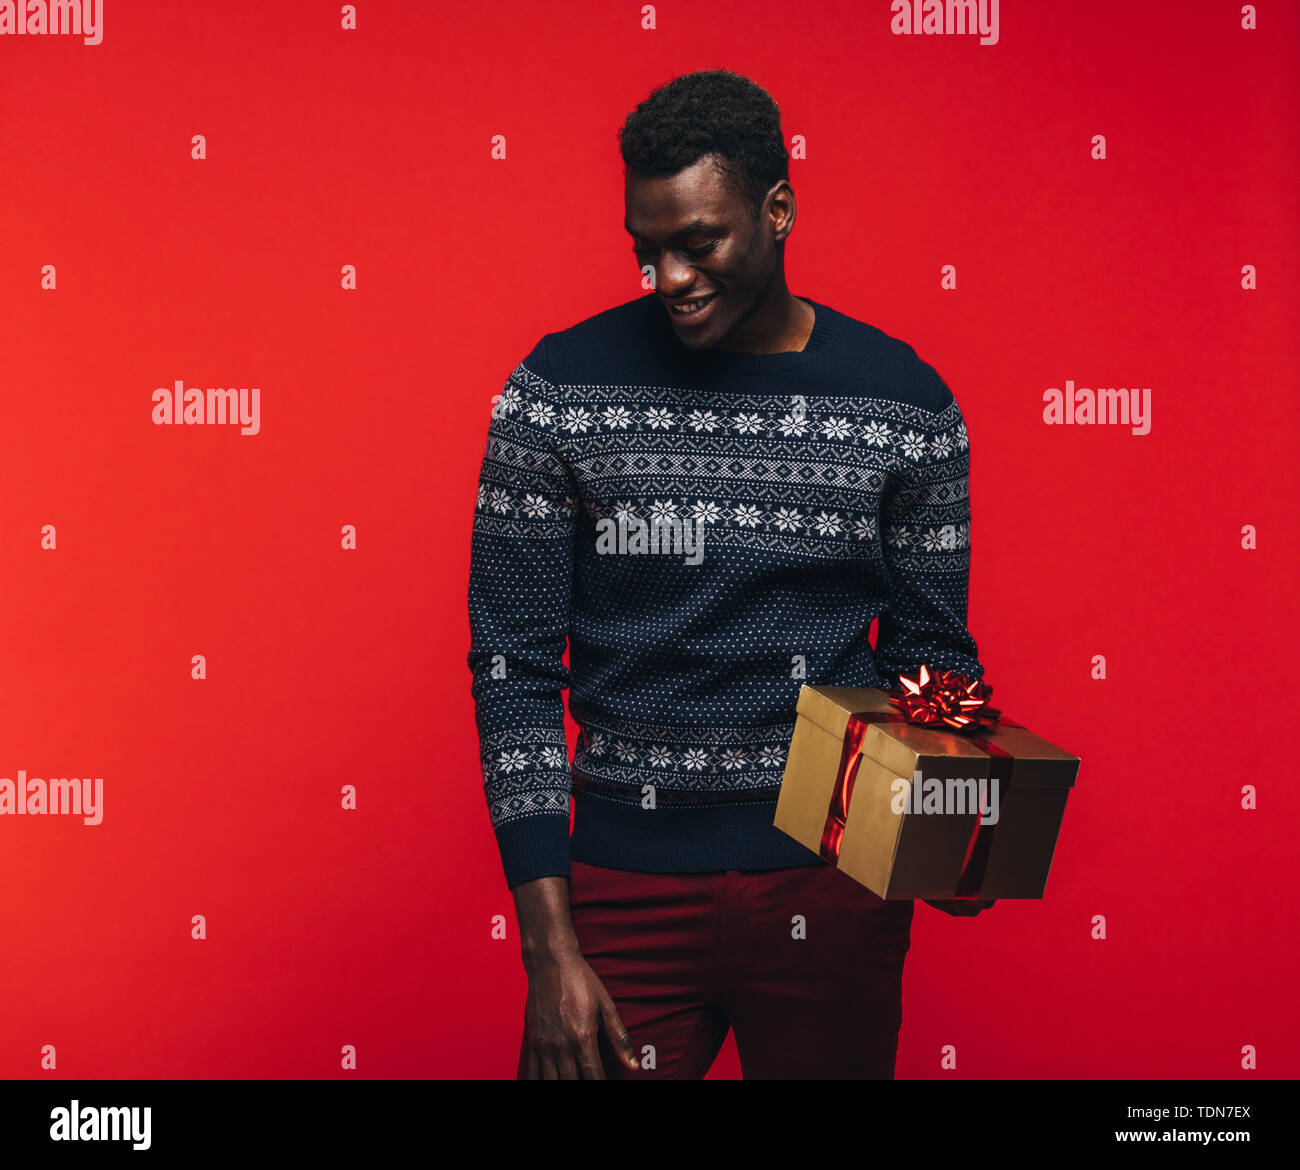 Young african guy holding a gift box. African american man with a present on red background. - Stock Image